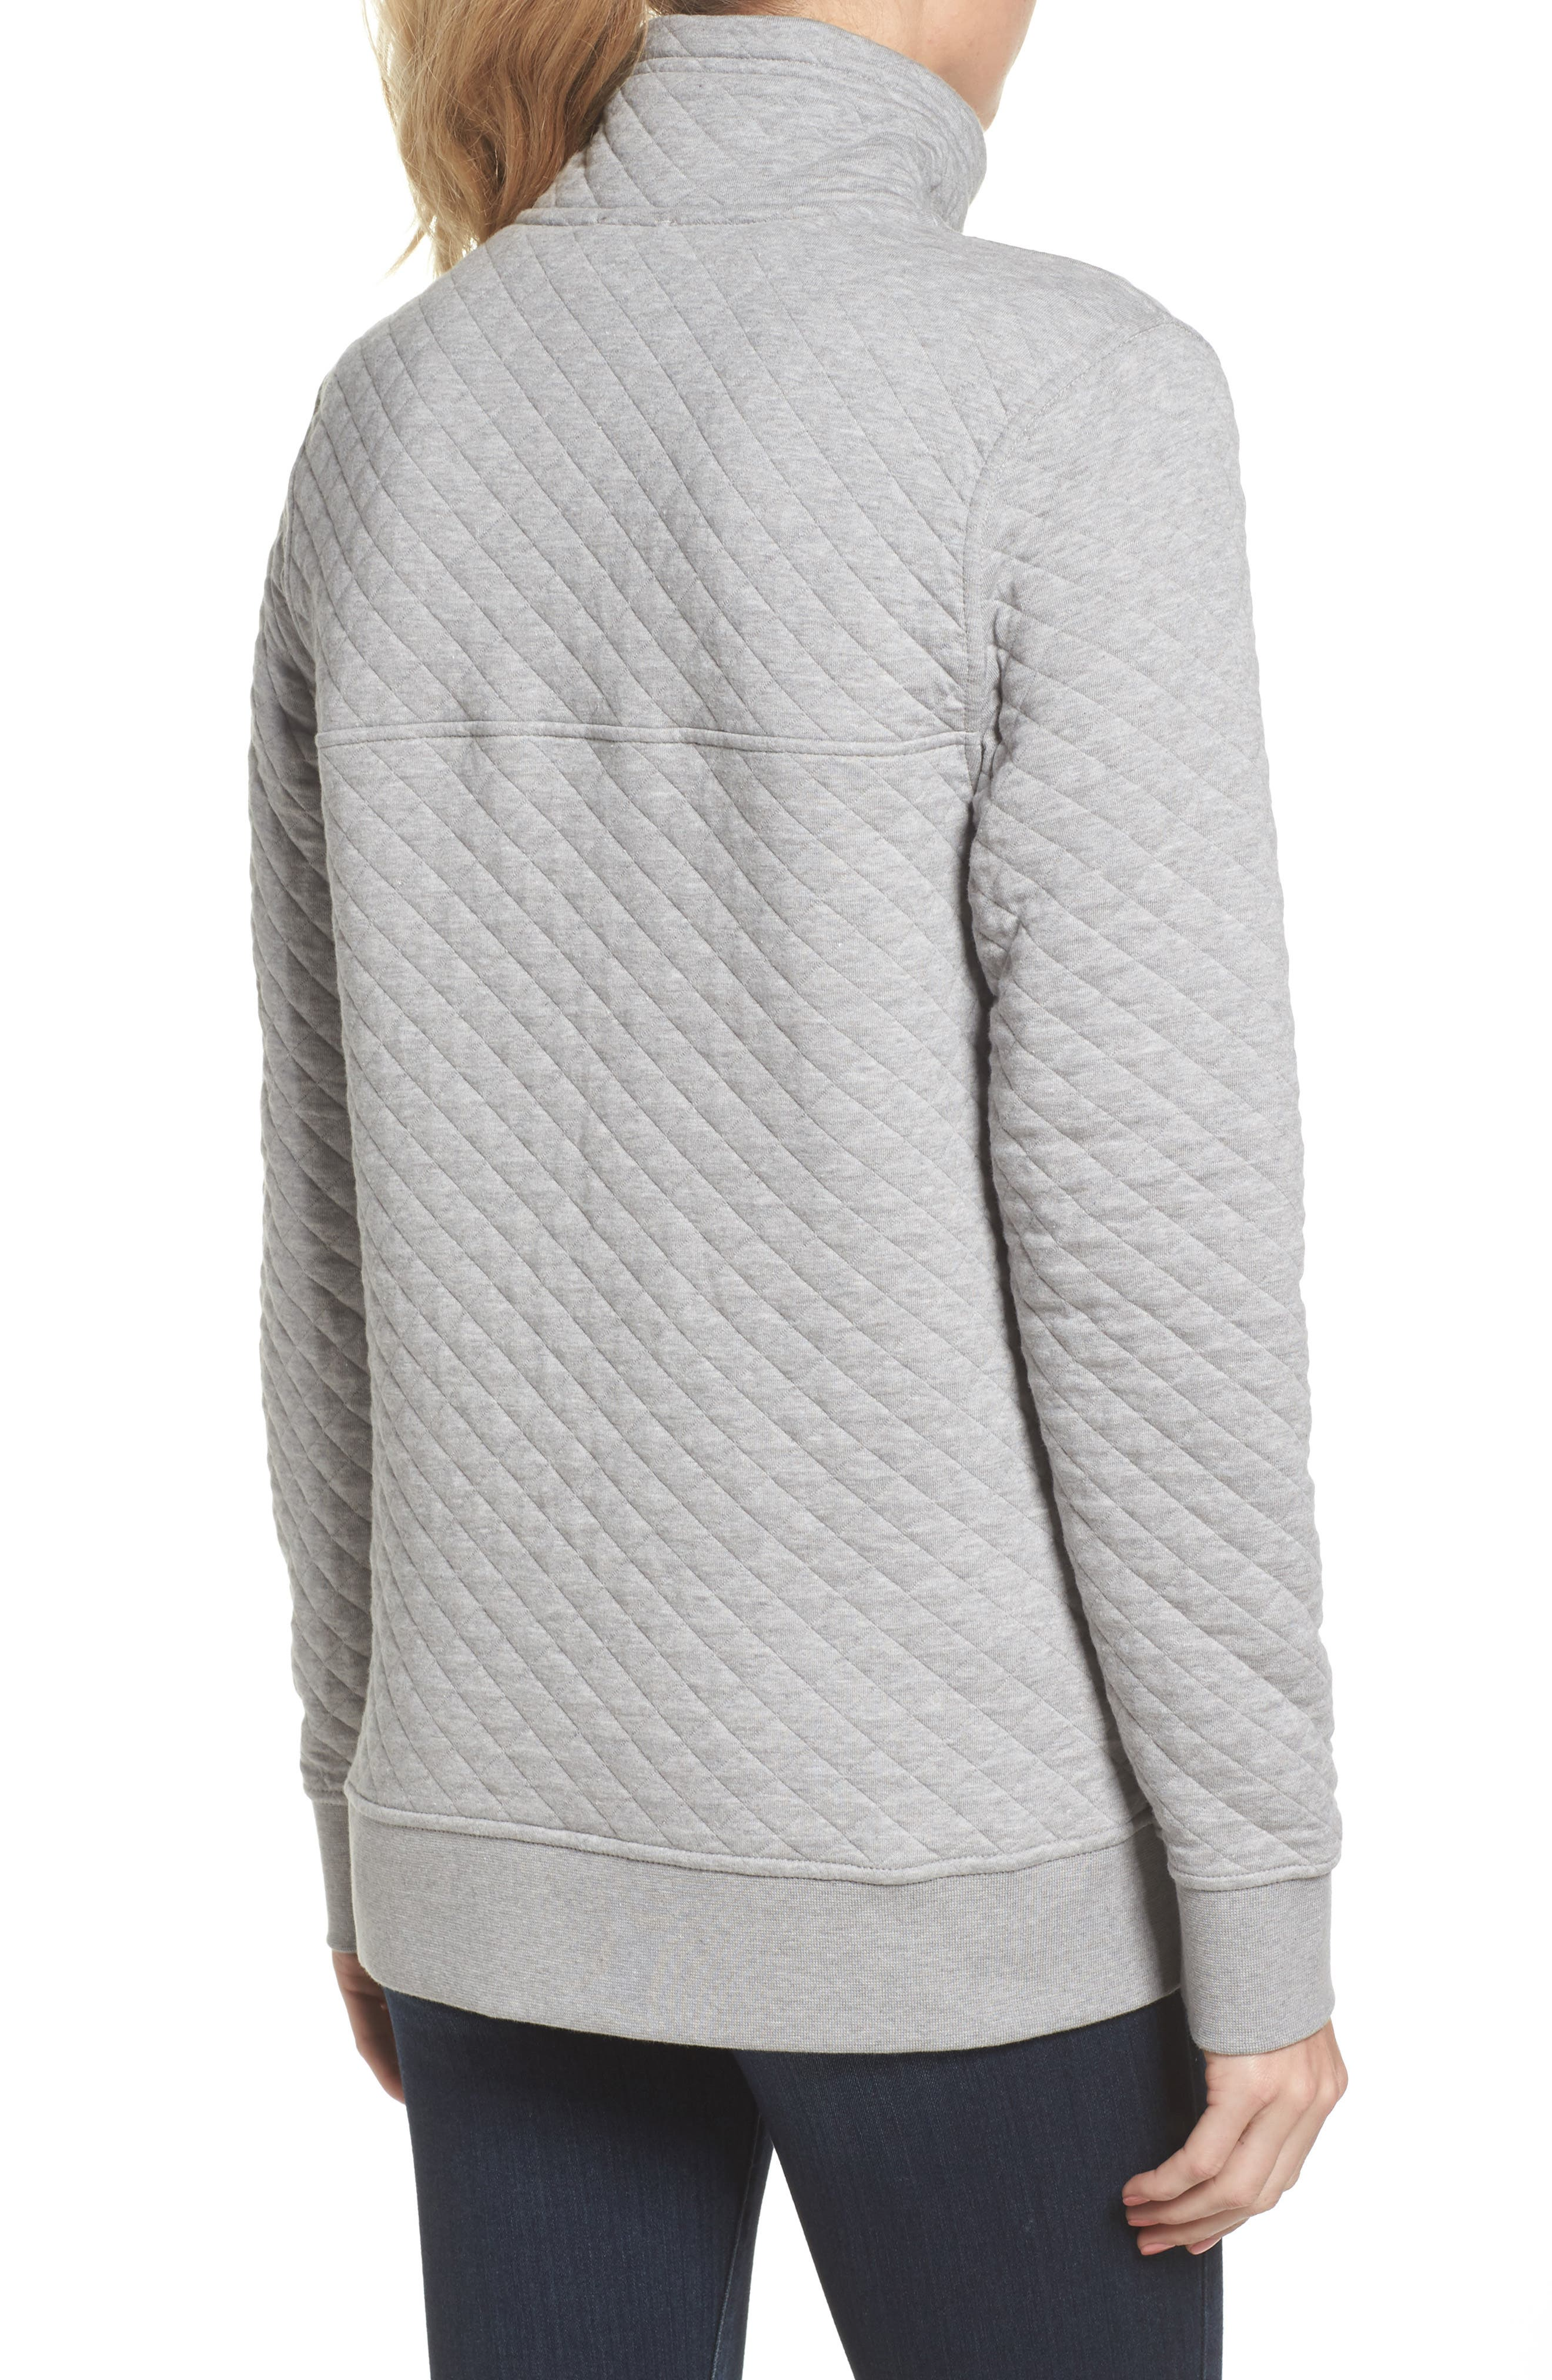 PATAGONIA,                             Snap-T<sup>®</sup> Quilted Pullover,                             Alternate thumbnail 2, color,                             023